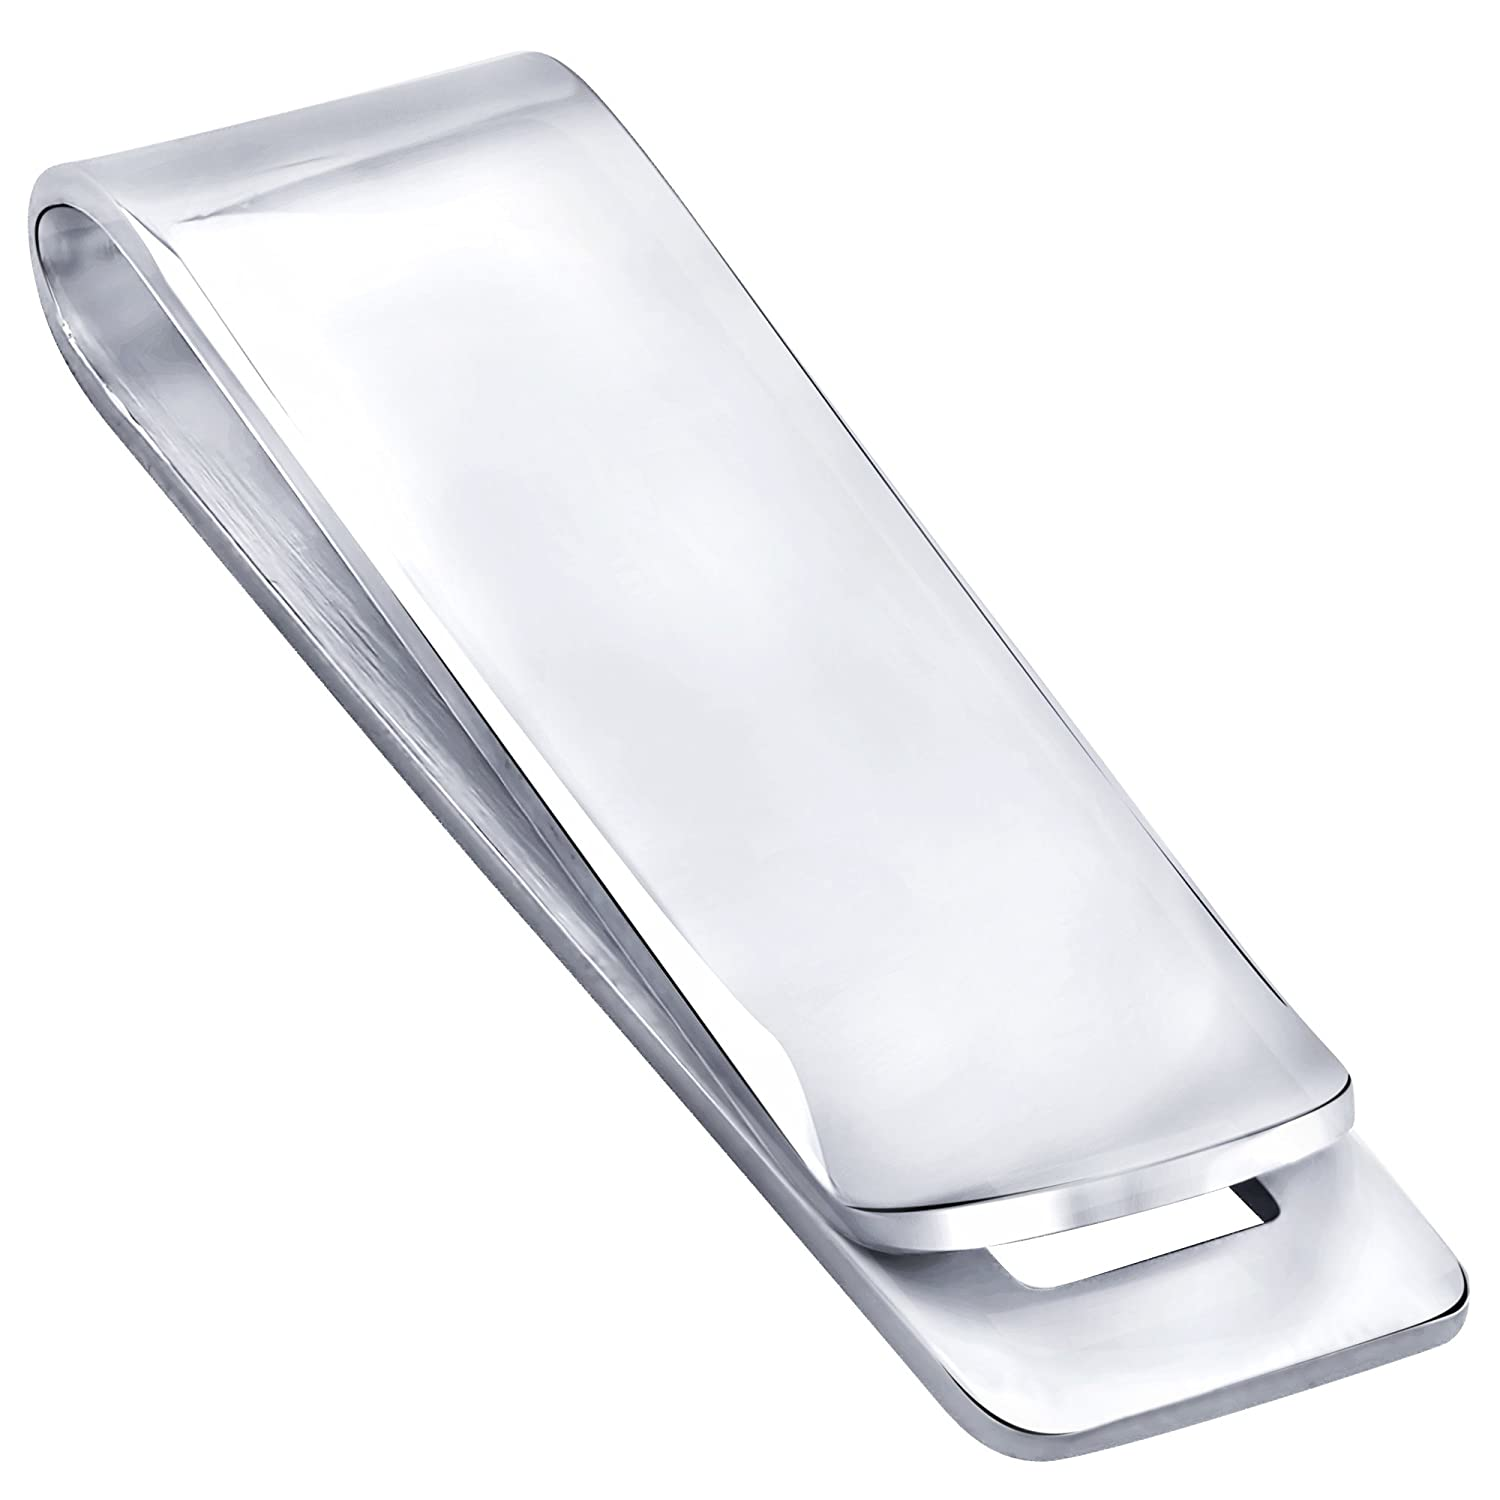 Sterling Silver .925 Engravable Solid Plain Design Money Clip, Made In Italy. By Sterling Manufacturers MC70709